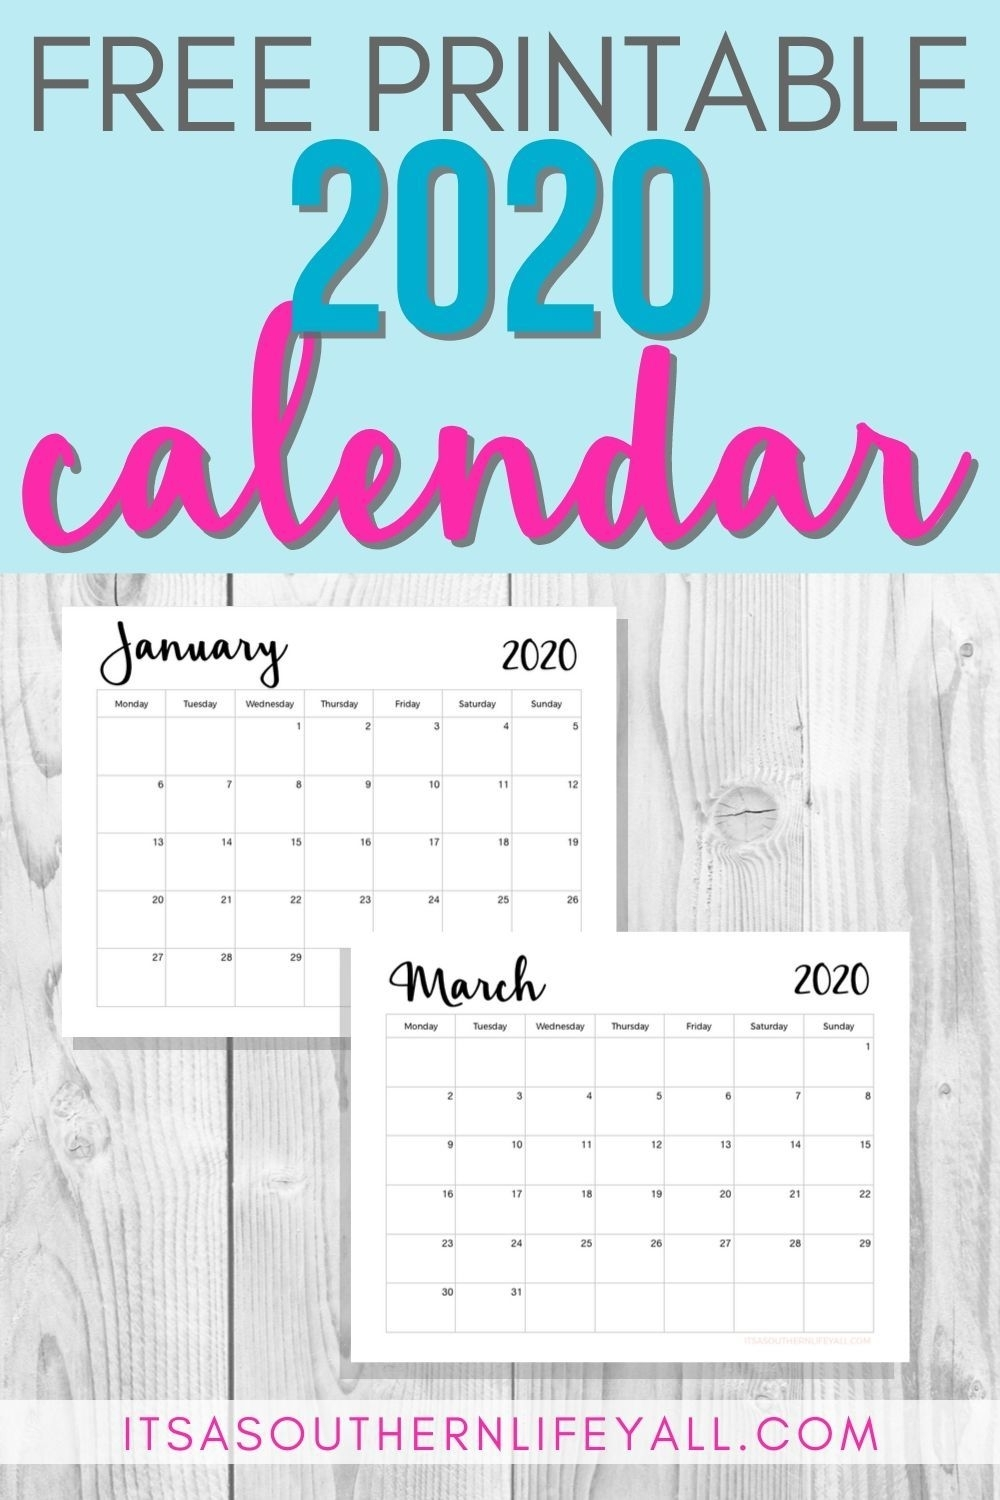 Free Printable 2020 Calendar | Monthly Planner Printable throughout 2020 Calendar With Important Dates